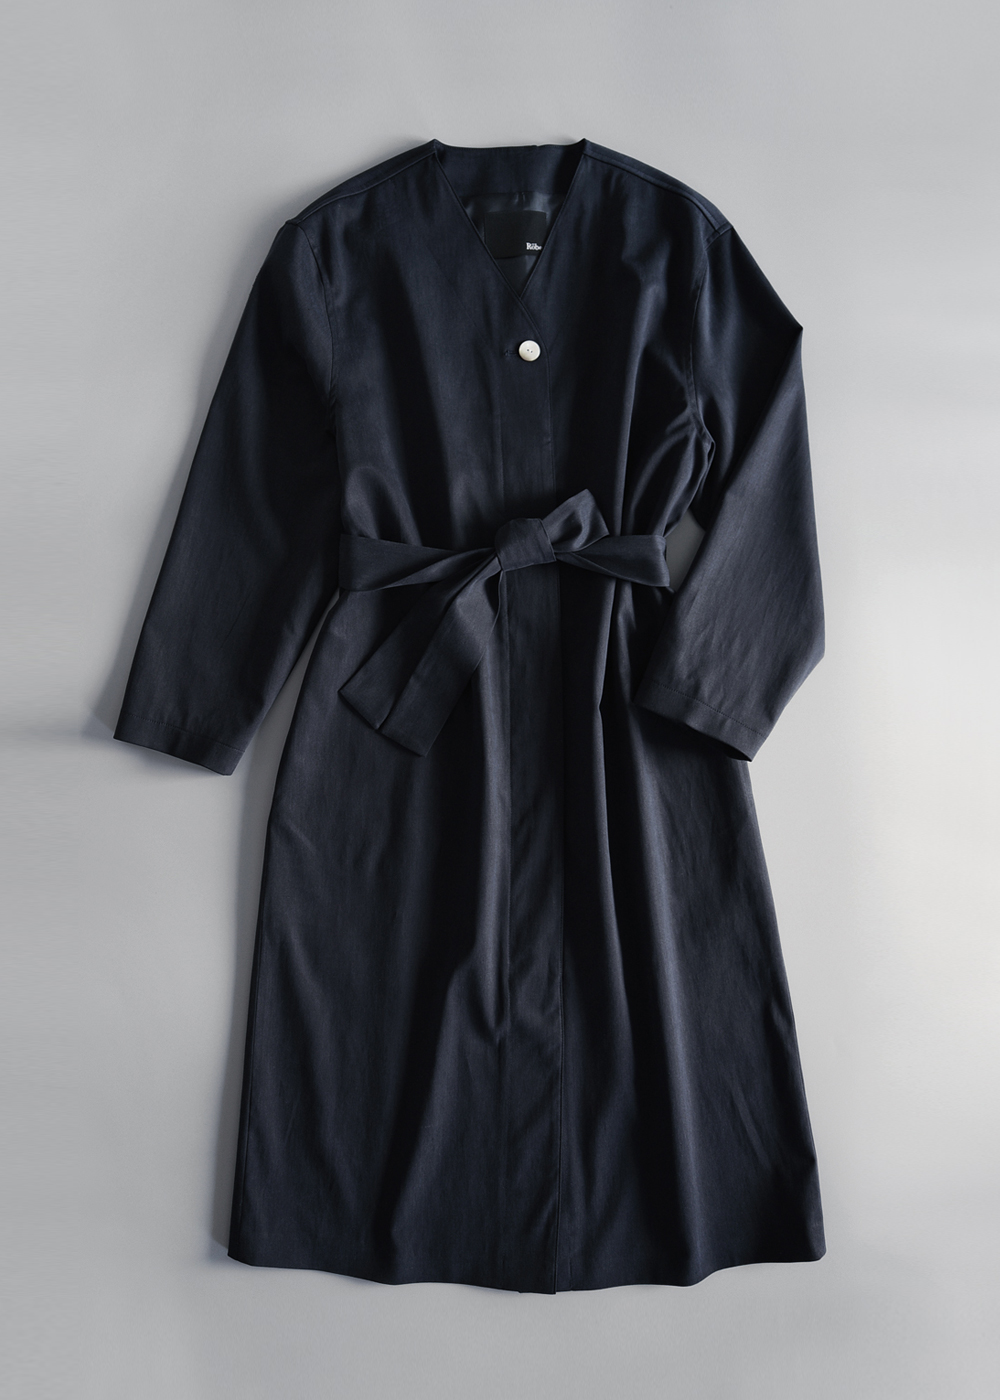 [ROBE] European Coat